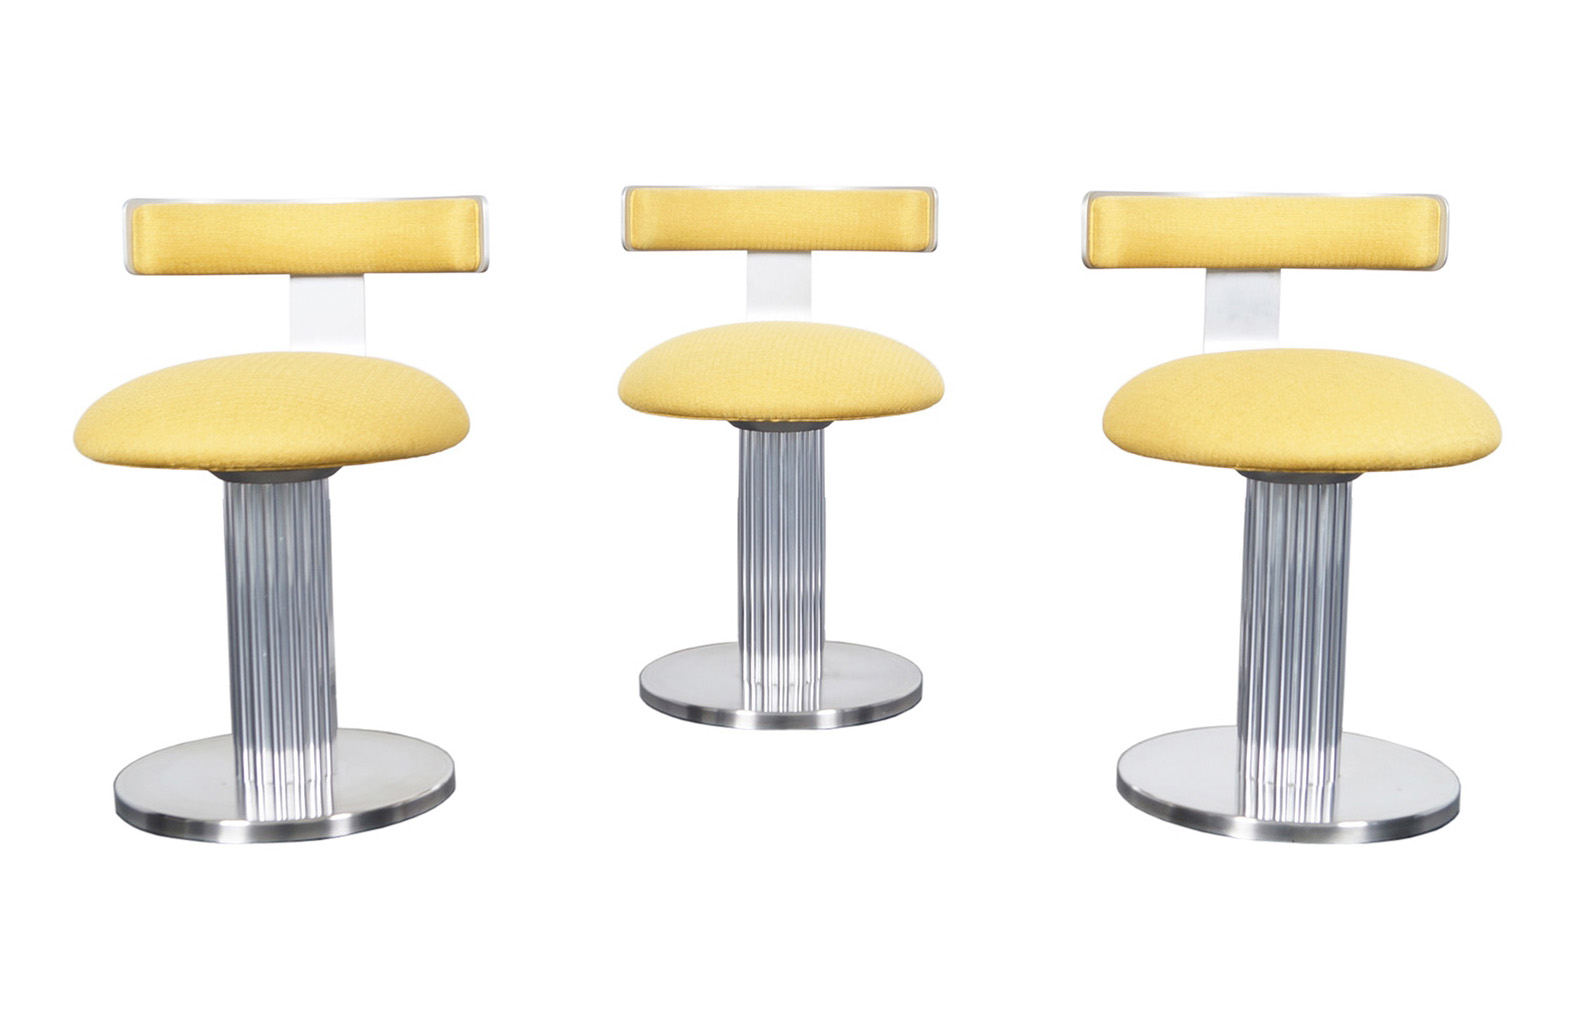 Vintage Chrome Swivel Stools by Design for Leisure